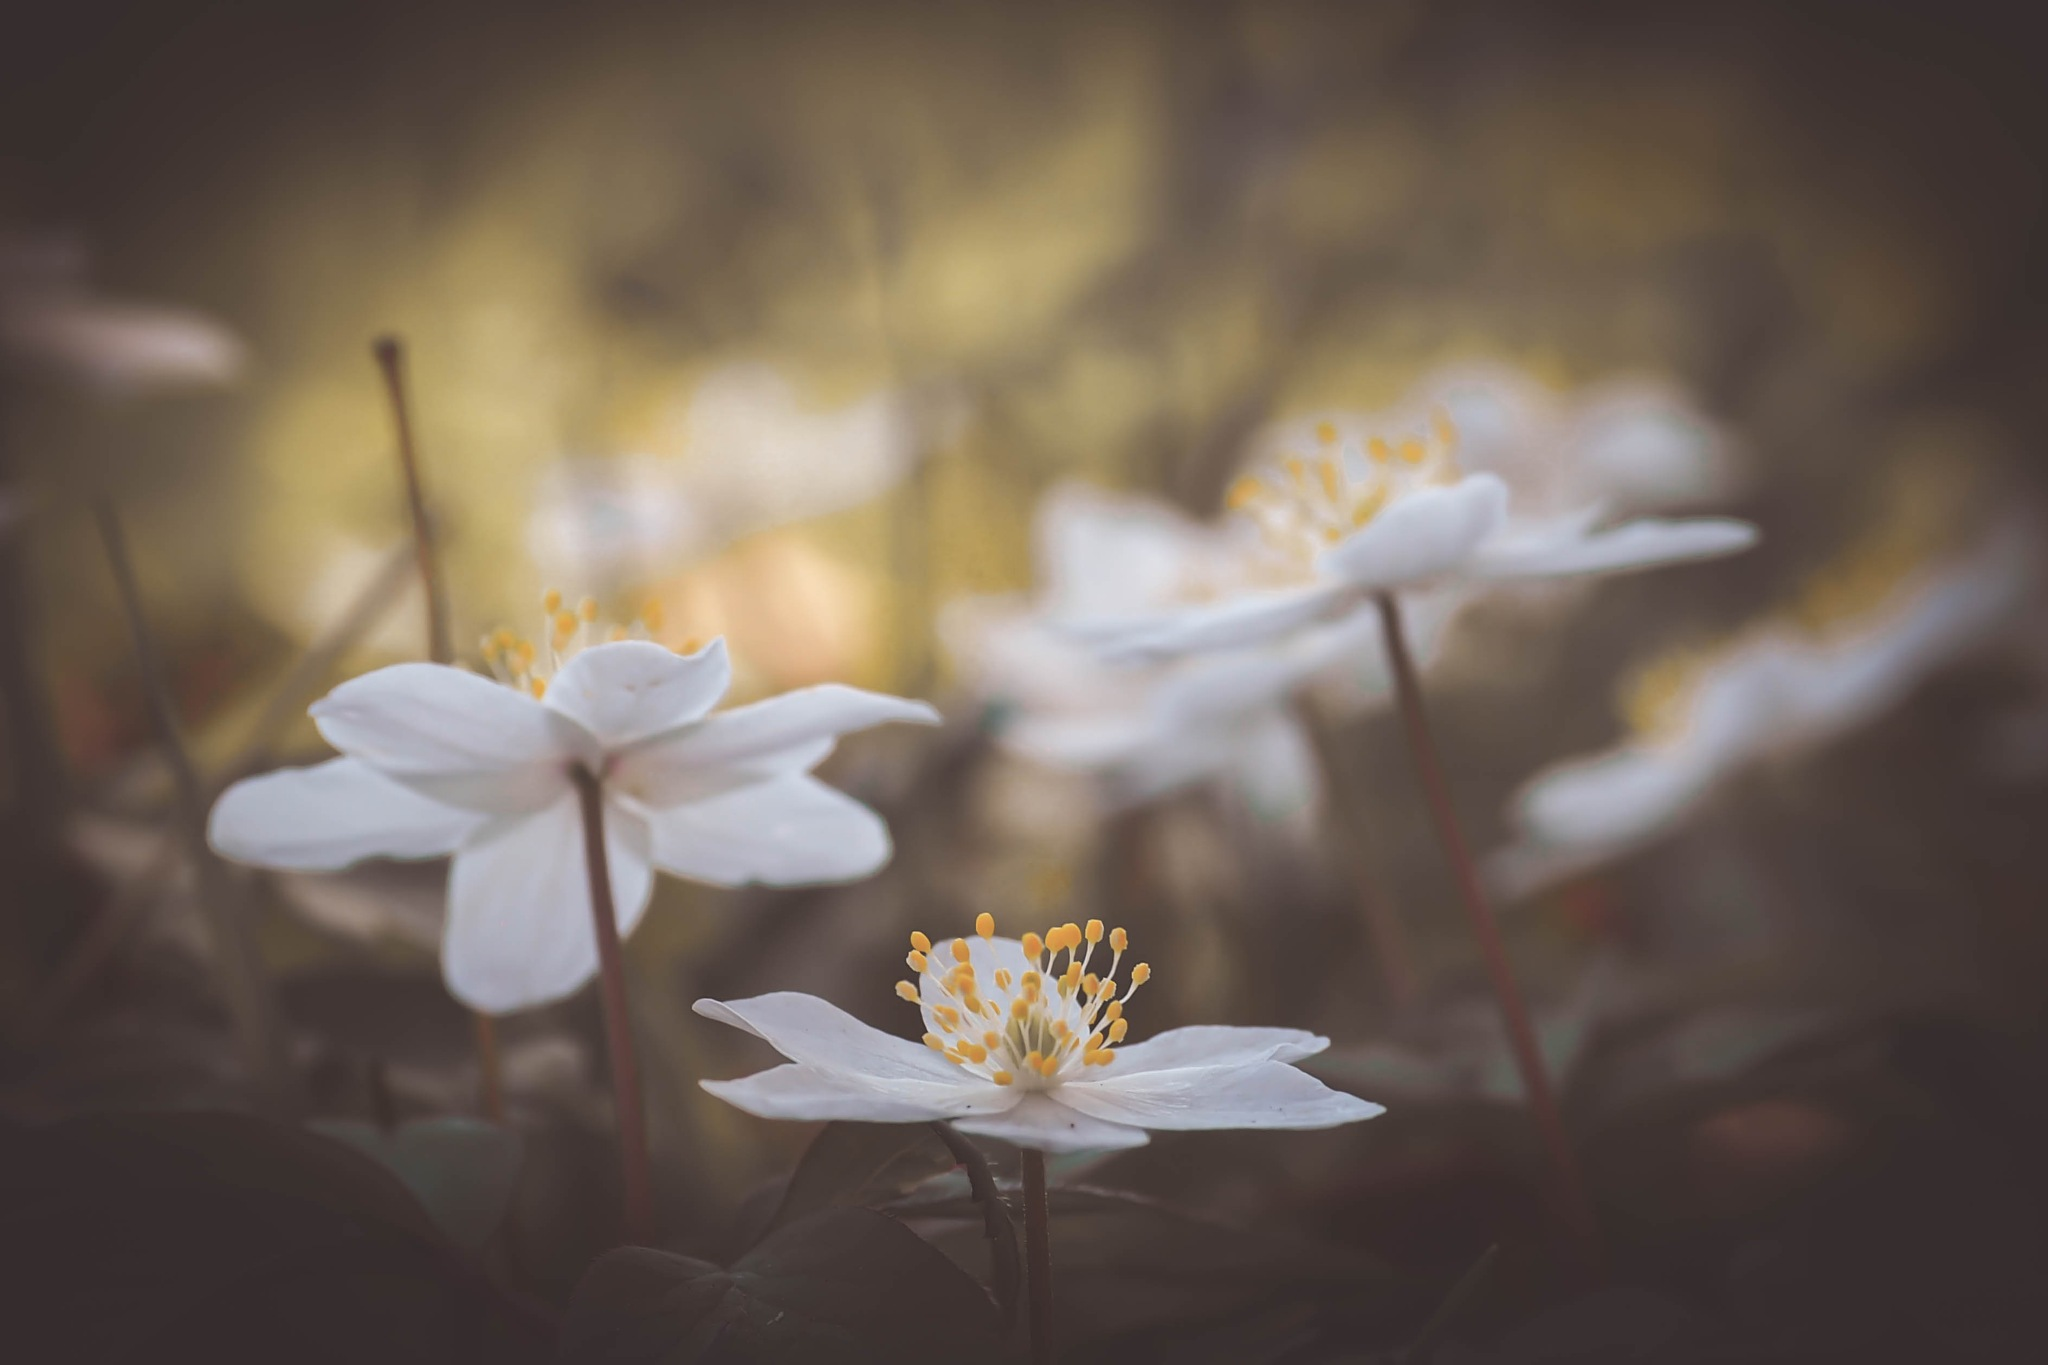 anemones by alain michel